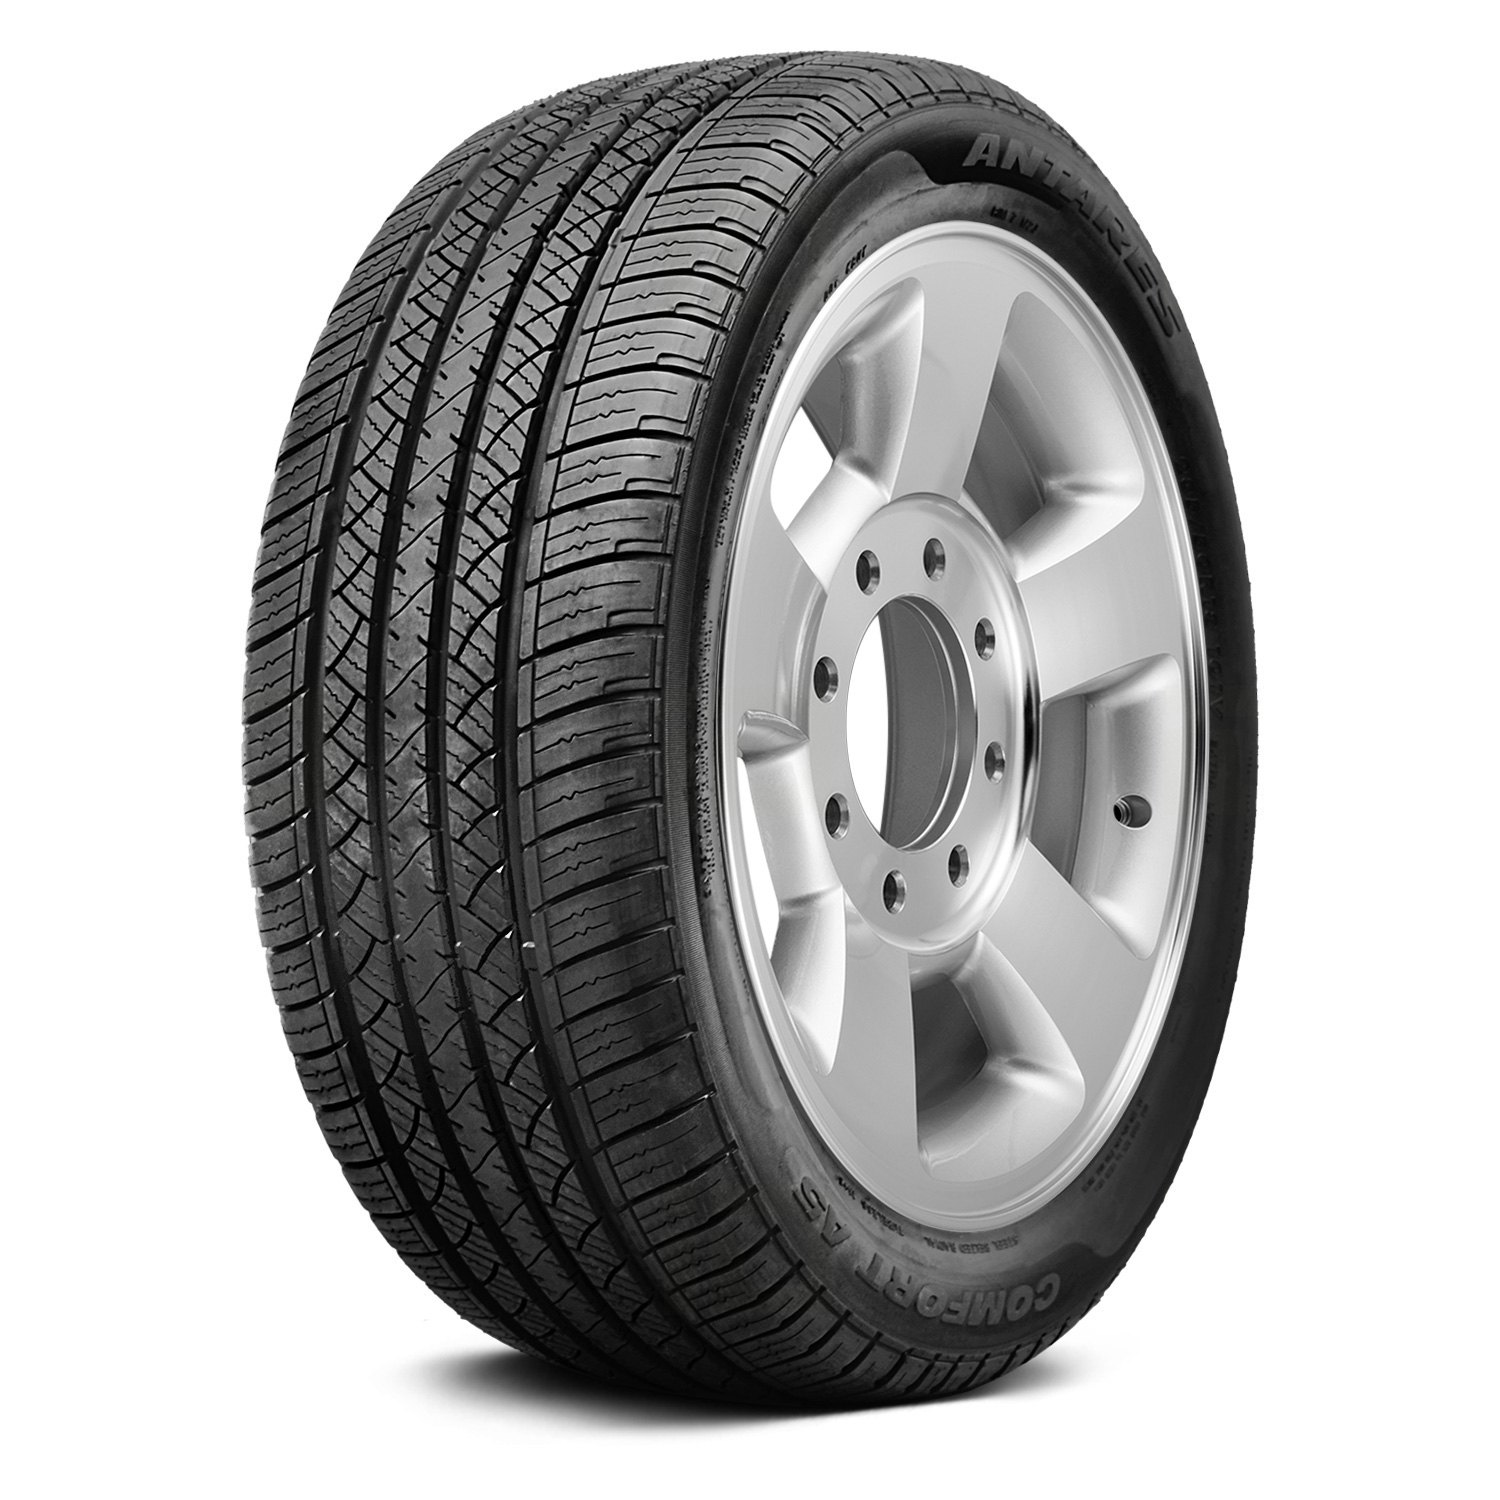 Who Makes Antares Tires